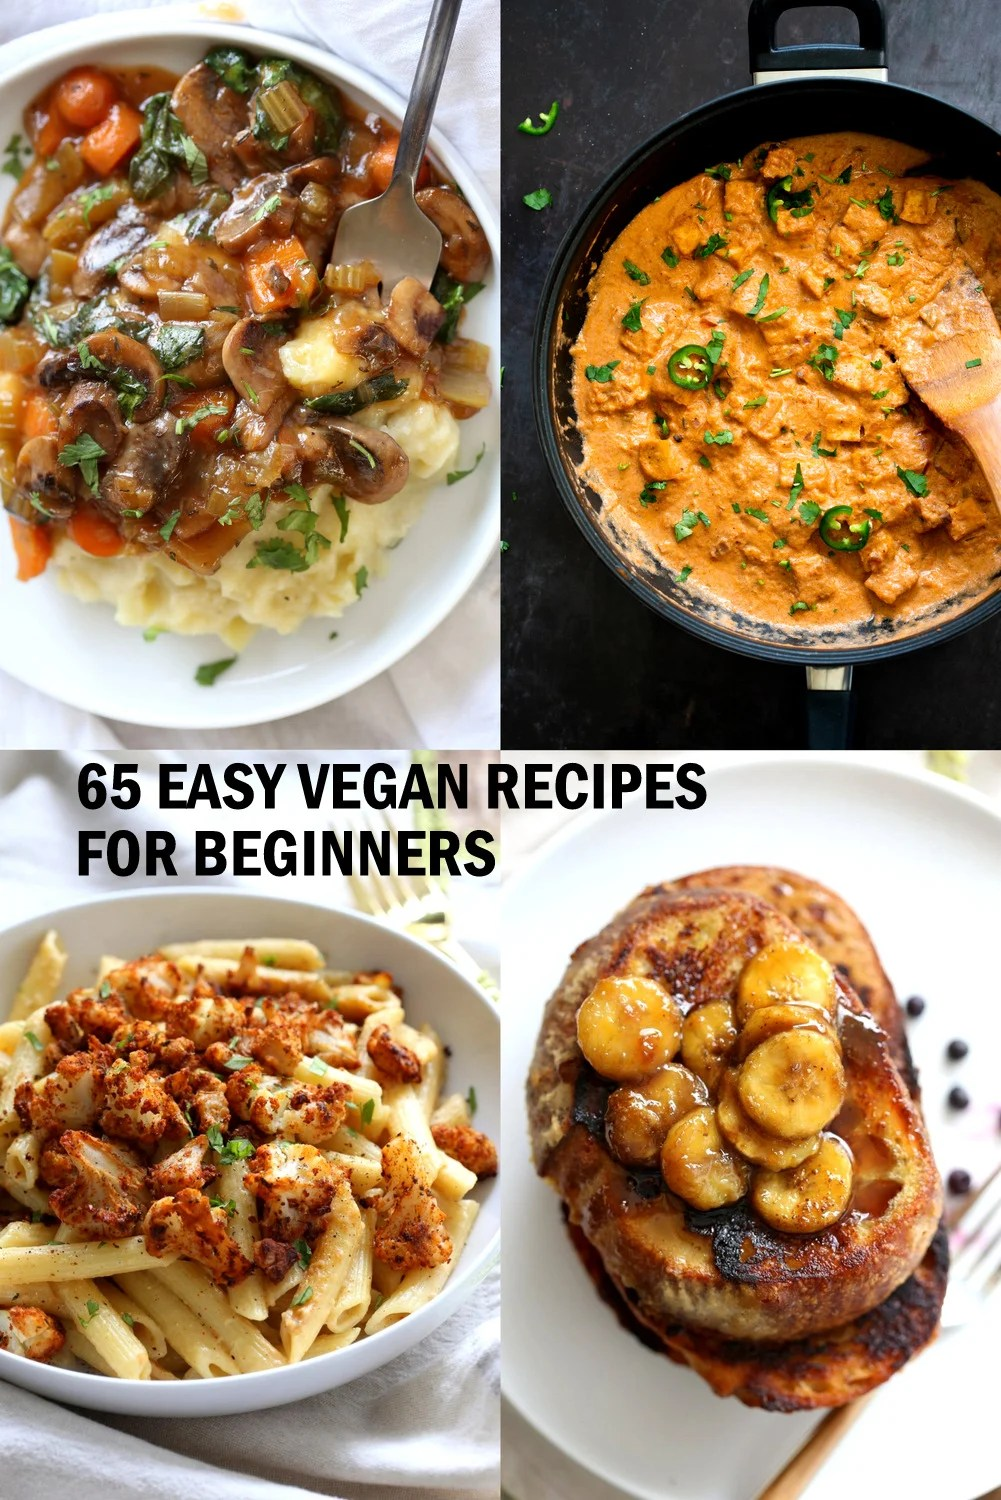 65 Easy Vegan Recipes for Beginners! Easy 1 Pot Meals, soups, stir fries, curries, burgers, pizza, breakfast and dessert to get you started on your journey. Glutenfree Soyfree Nutfree options #vegan #easyveganrecipes #bestveganrecipes #veganricha